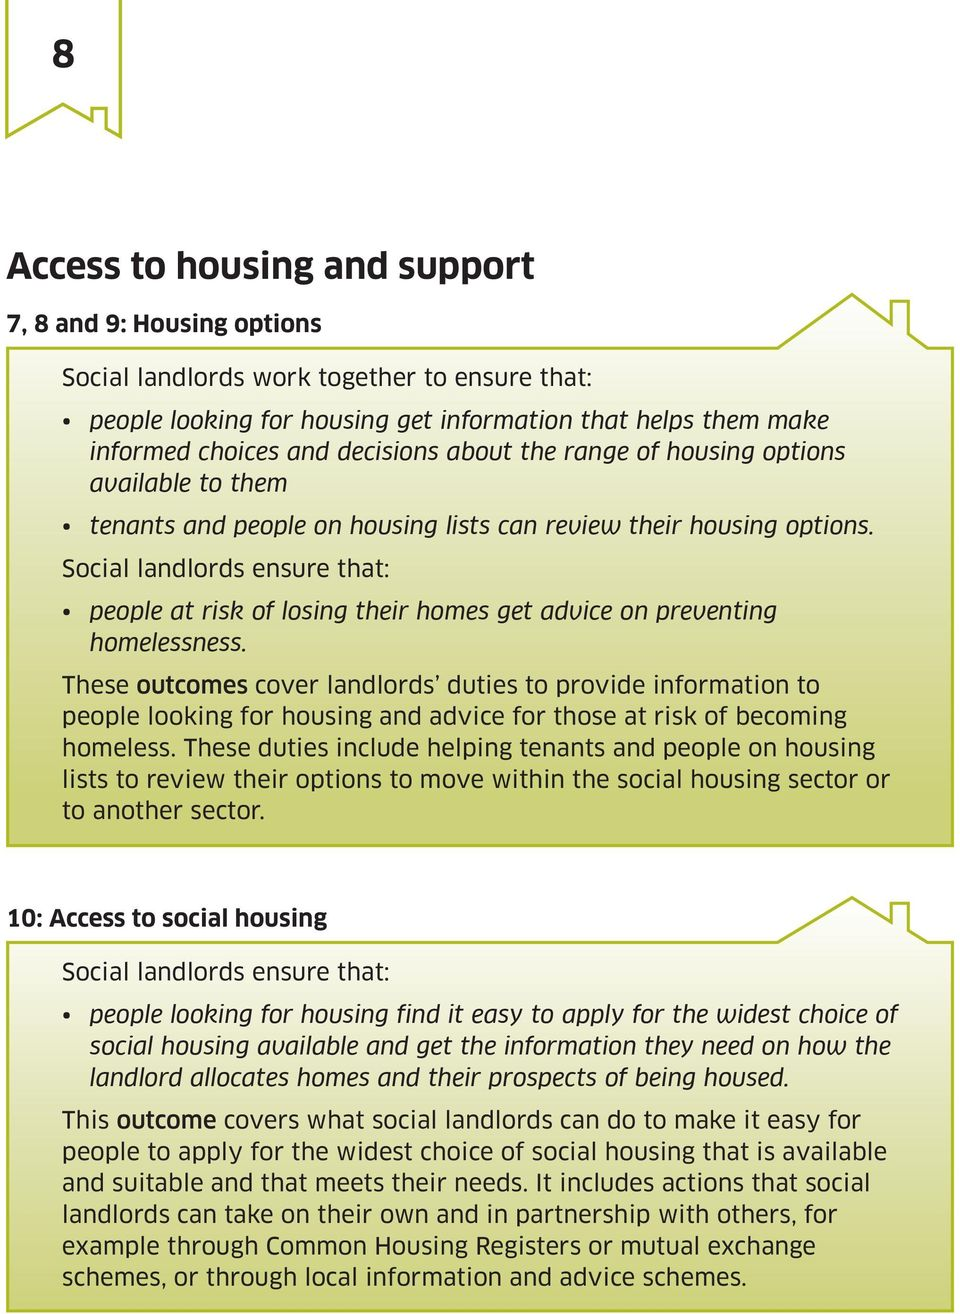 Social landlords ensure that: people at risk of losing their homes get advice on preventing homelessness.